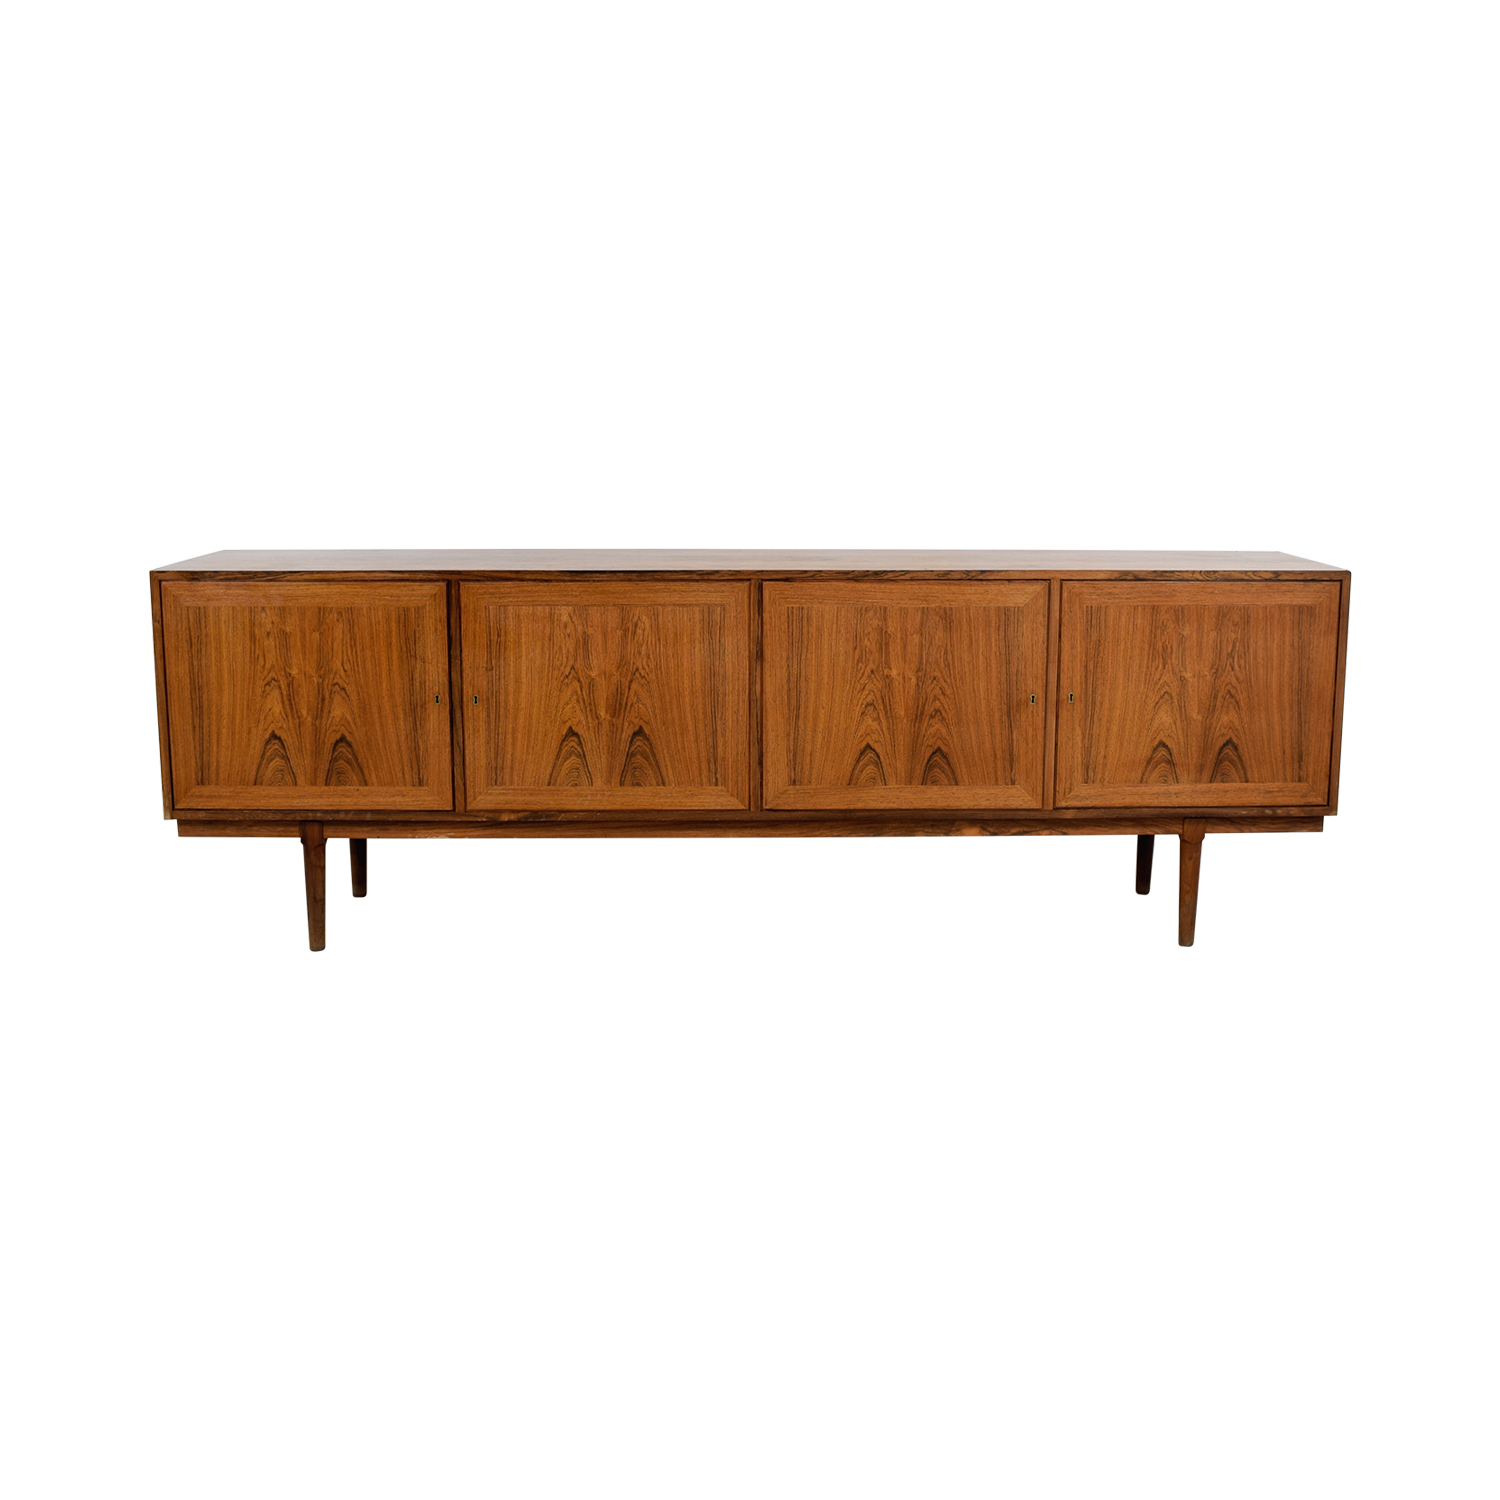 Antique Danish Wooden Credenza nyc